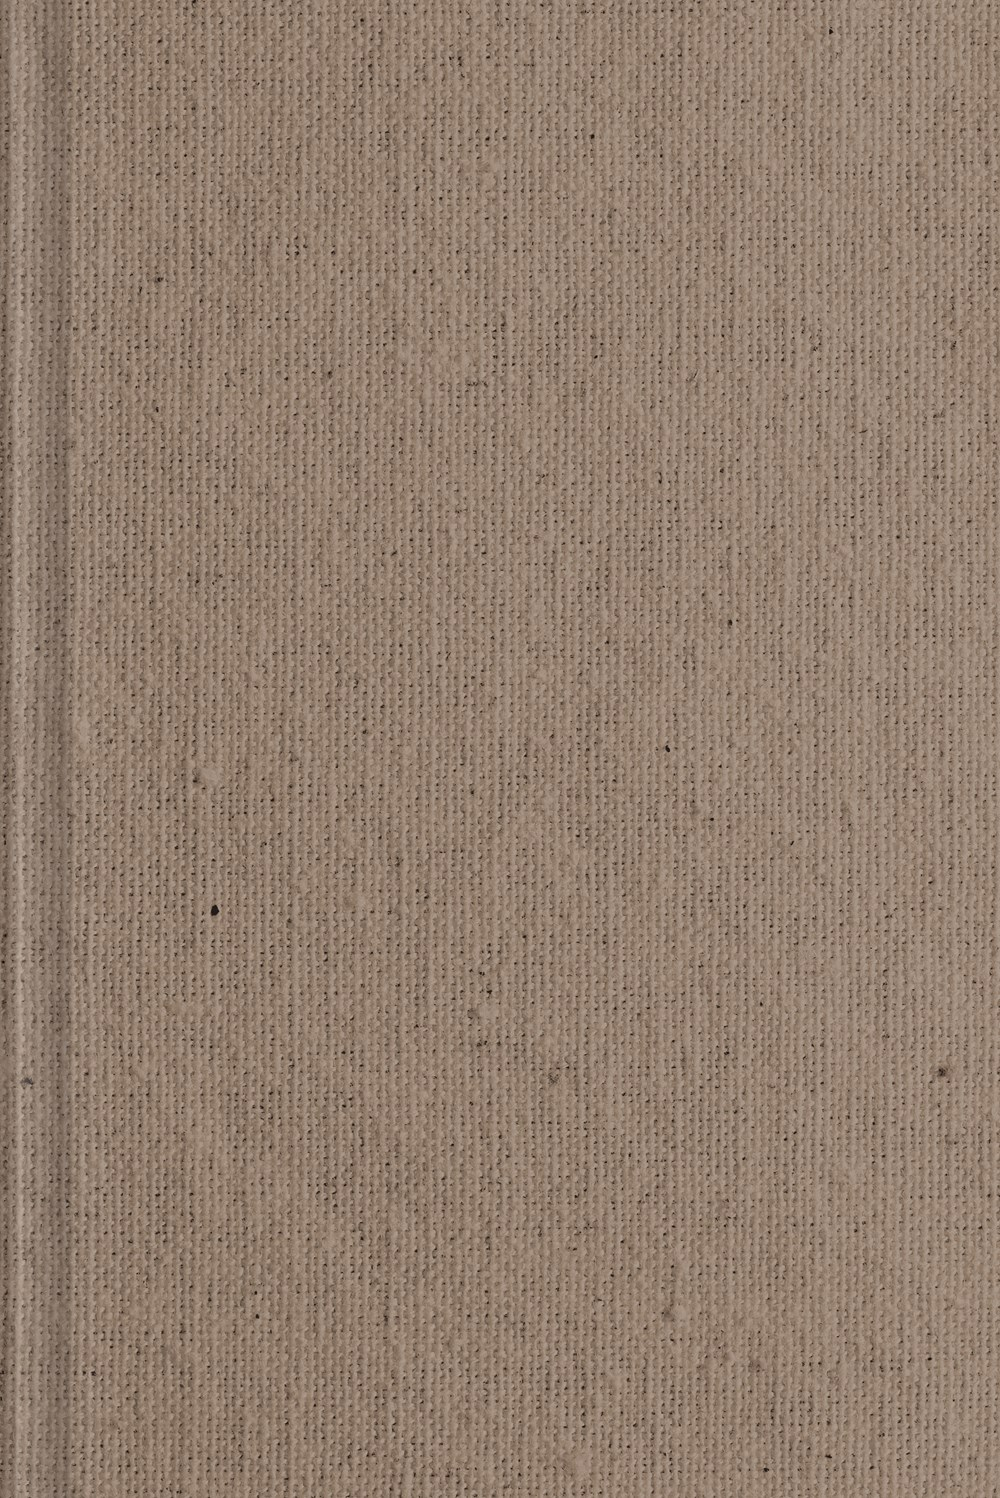 ESV Personal Size Study Bible (Cloth Over Board - Case of 12)